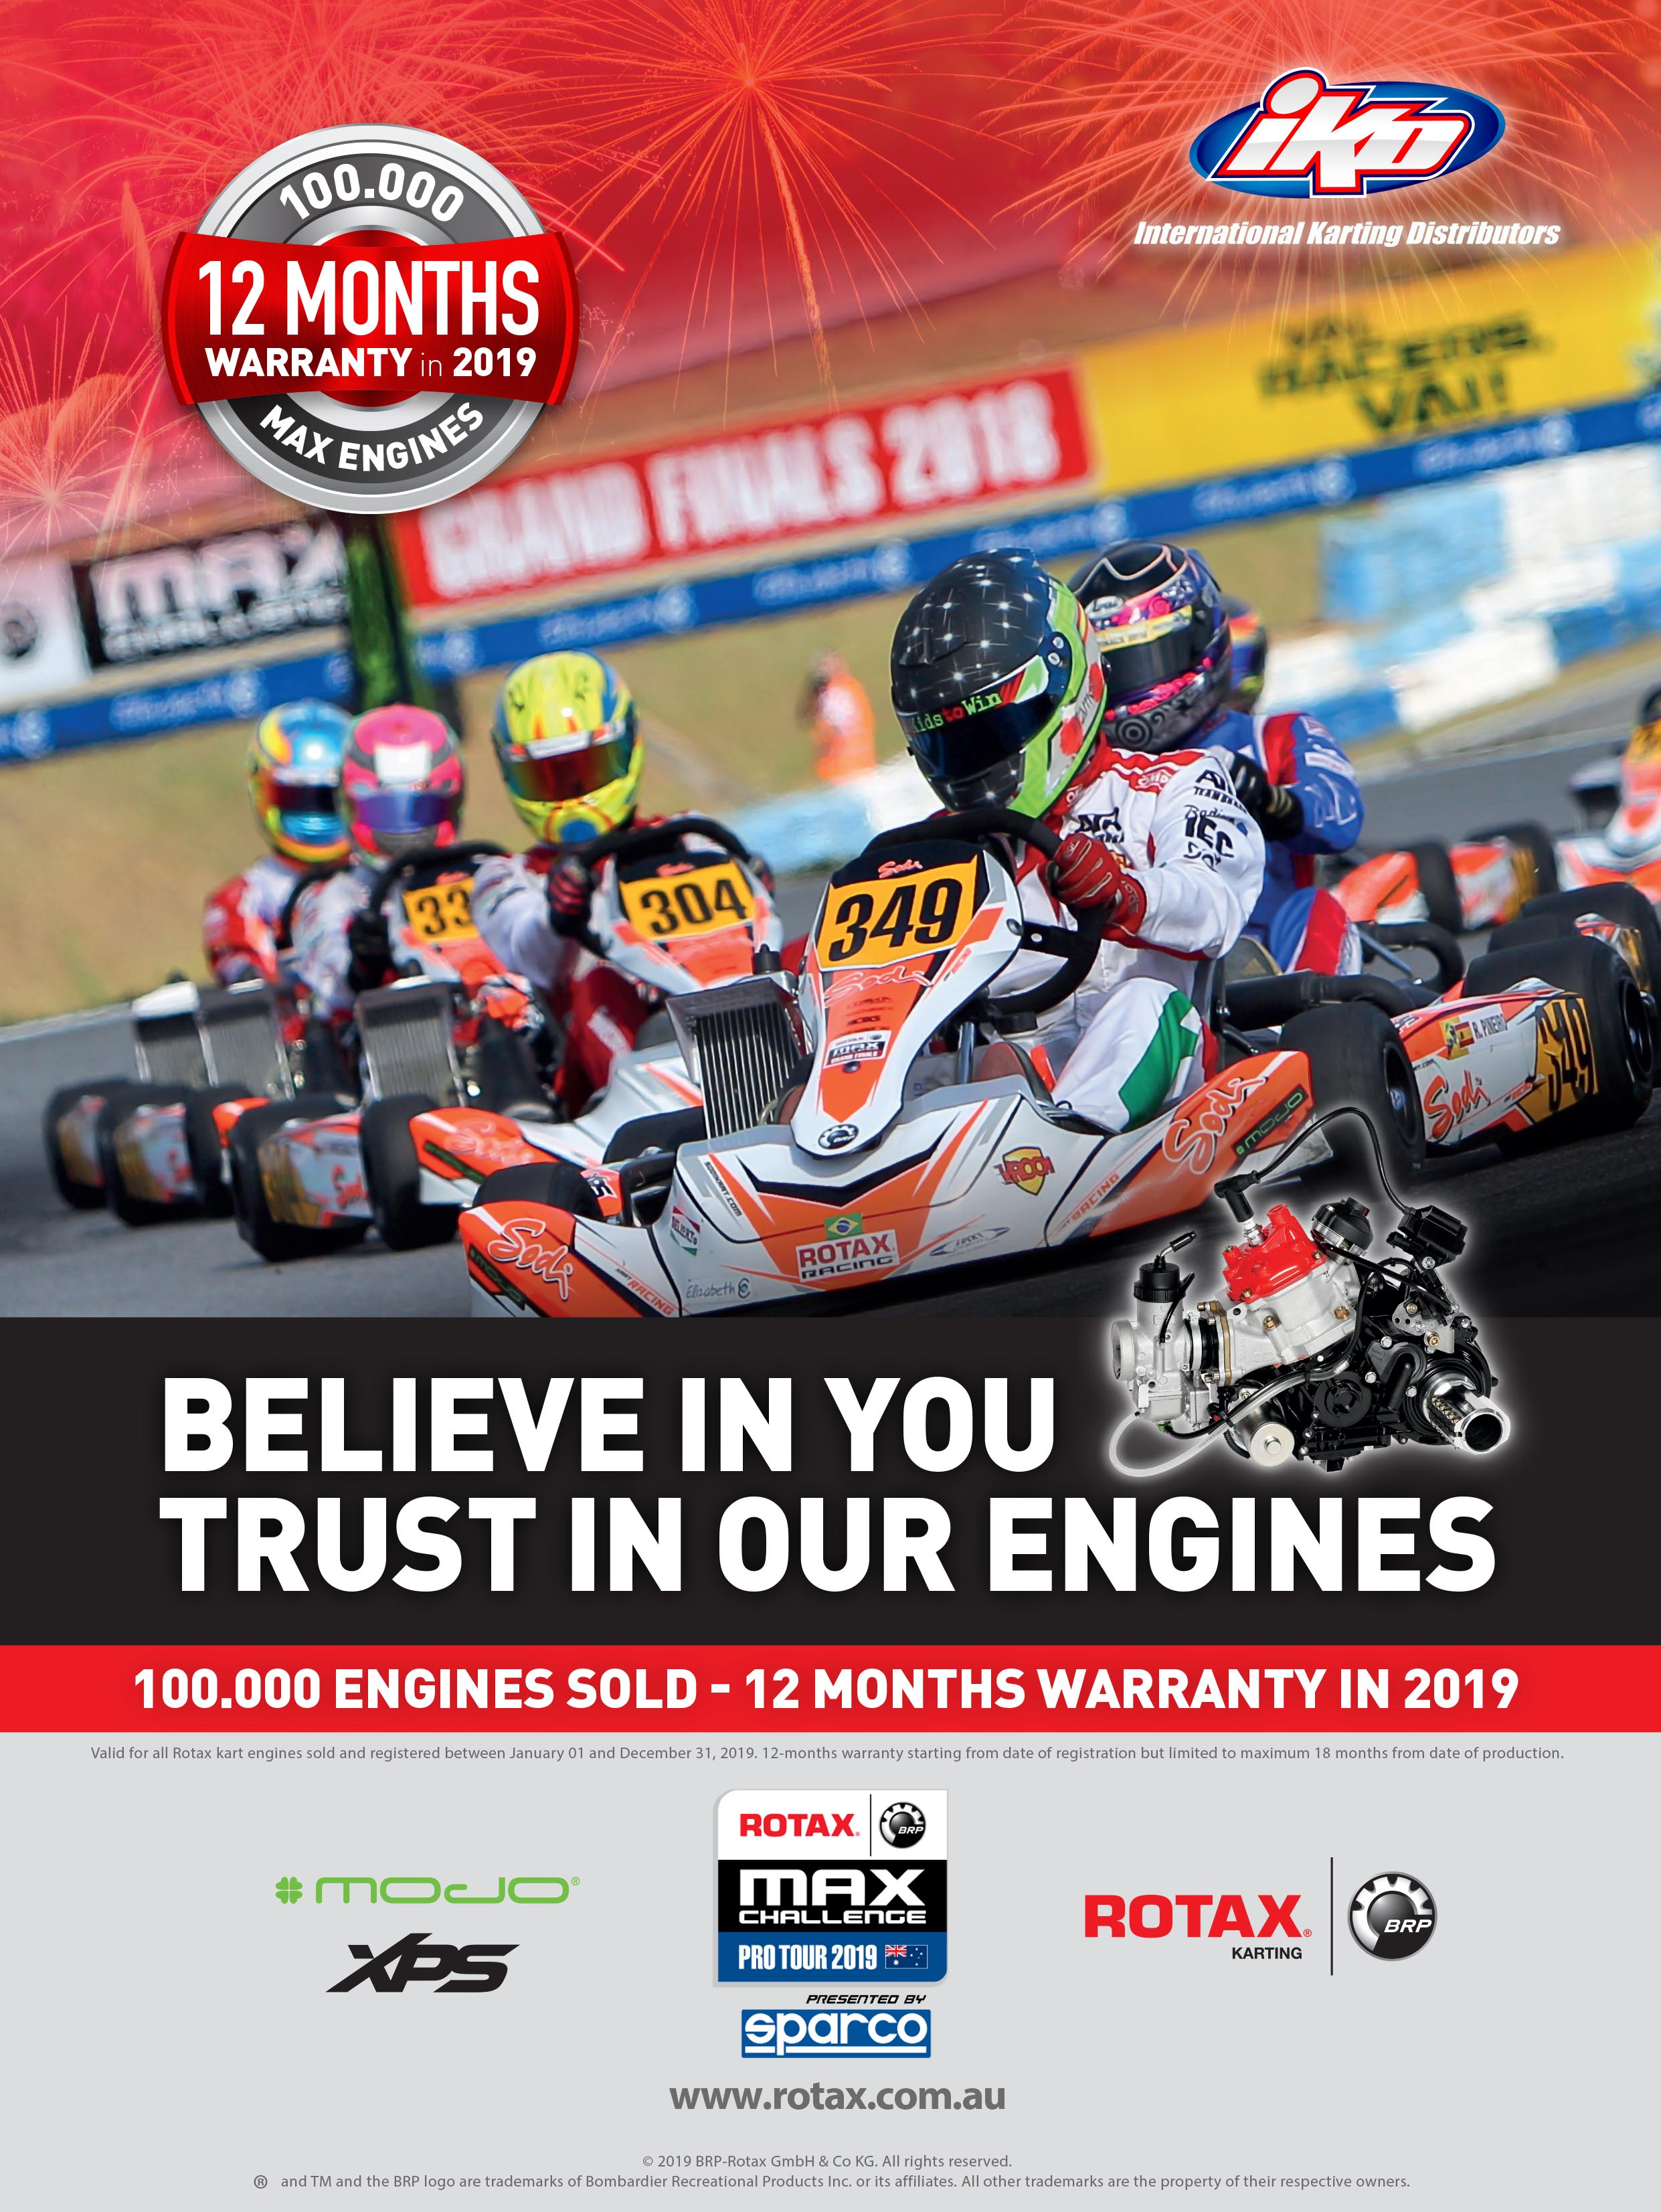 12 MONTH WARRANTY ON YOUR NEW ROTAX ENGINE IN 2019 | News